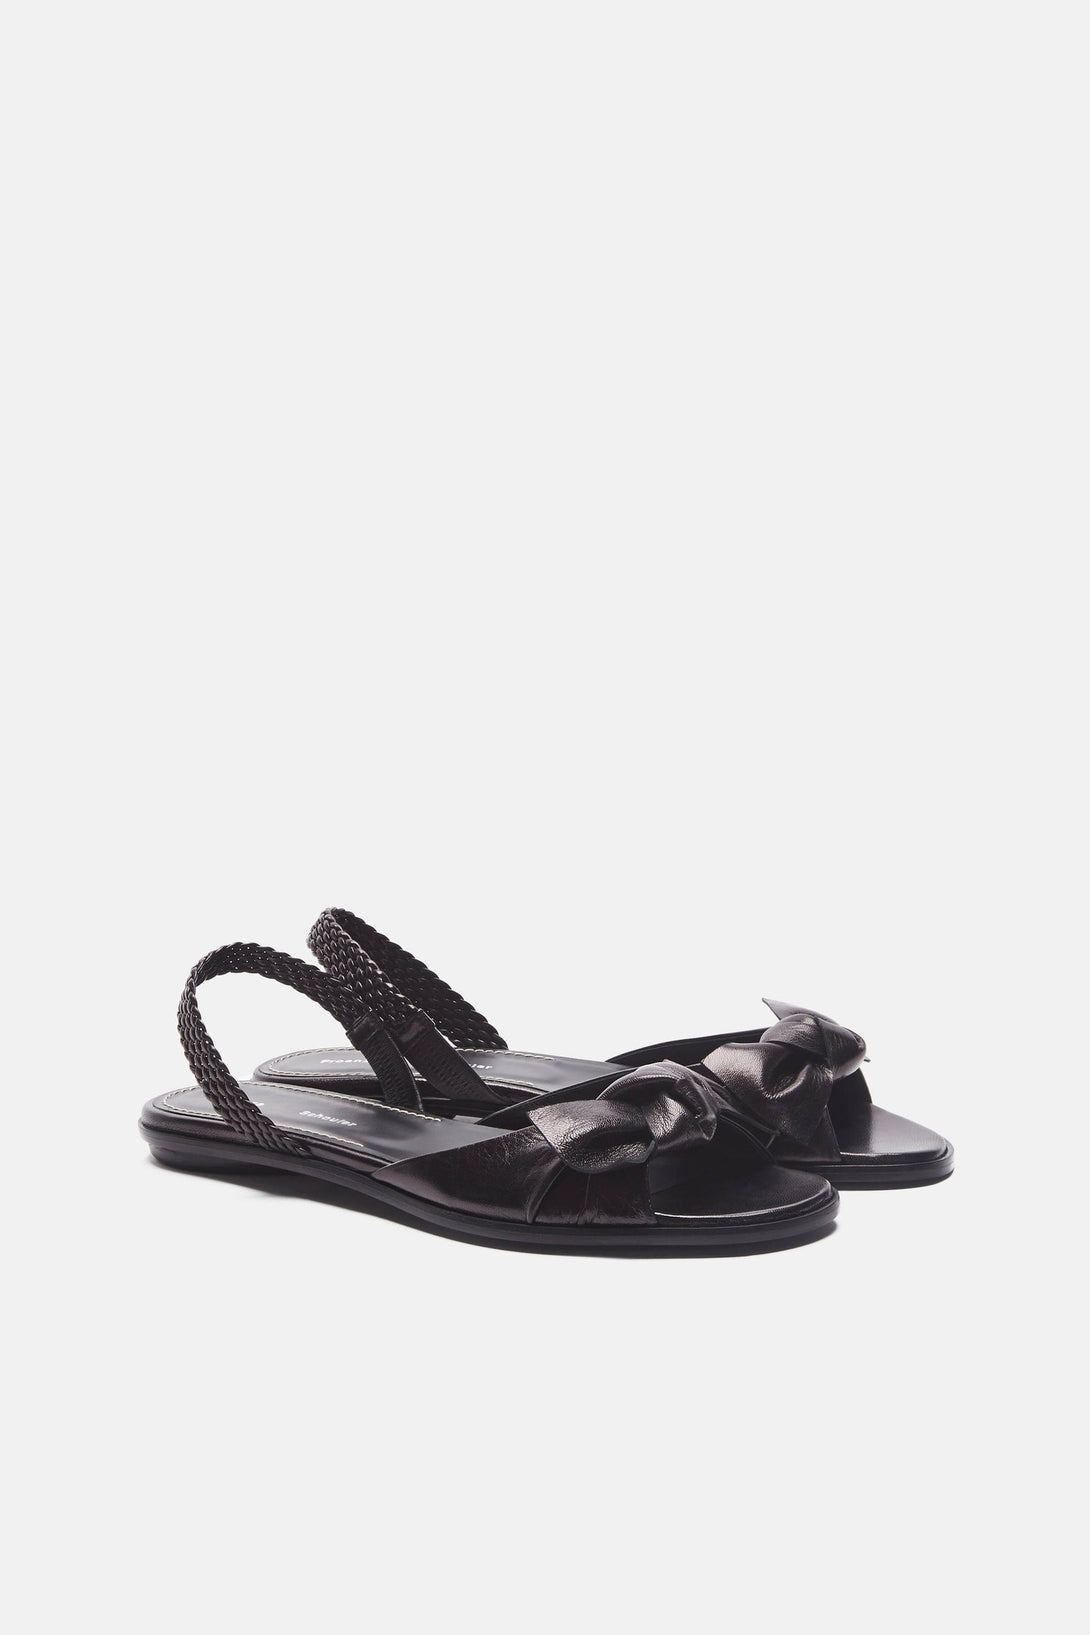 Proenza Schouler Bow Slingback Sandals discount popular in China online cheap online store cheap sale under $60 cheap sale great deals qJSLXT